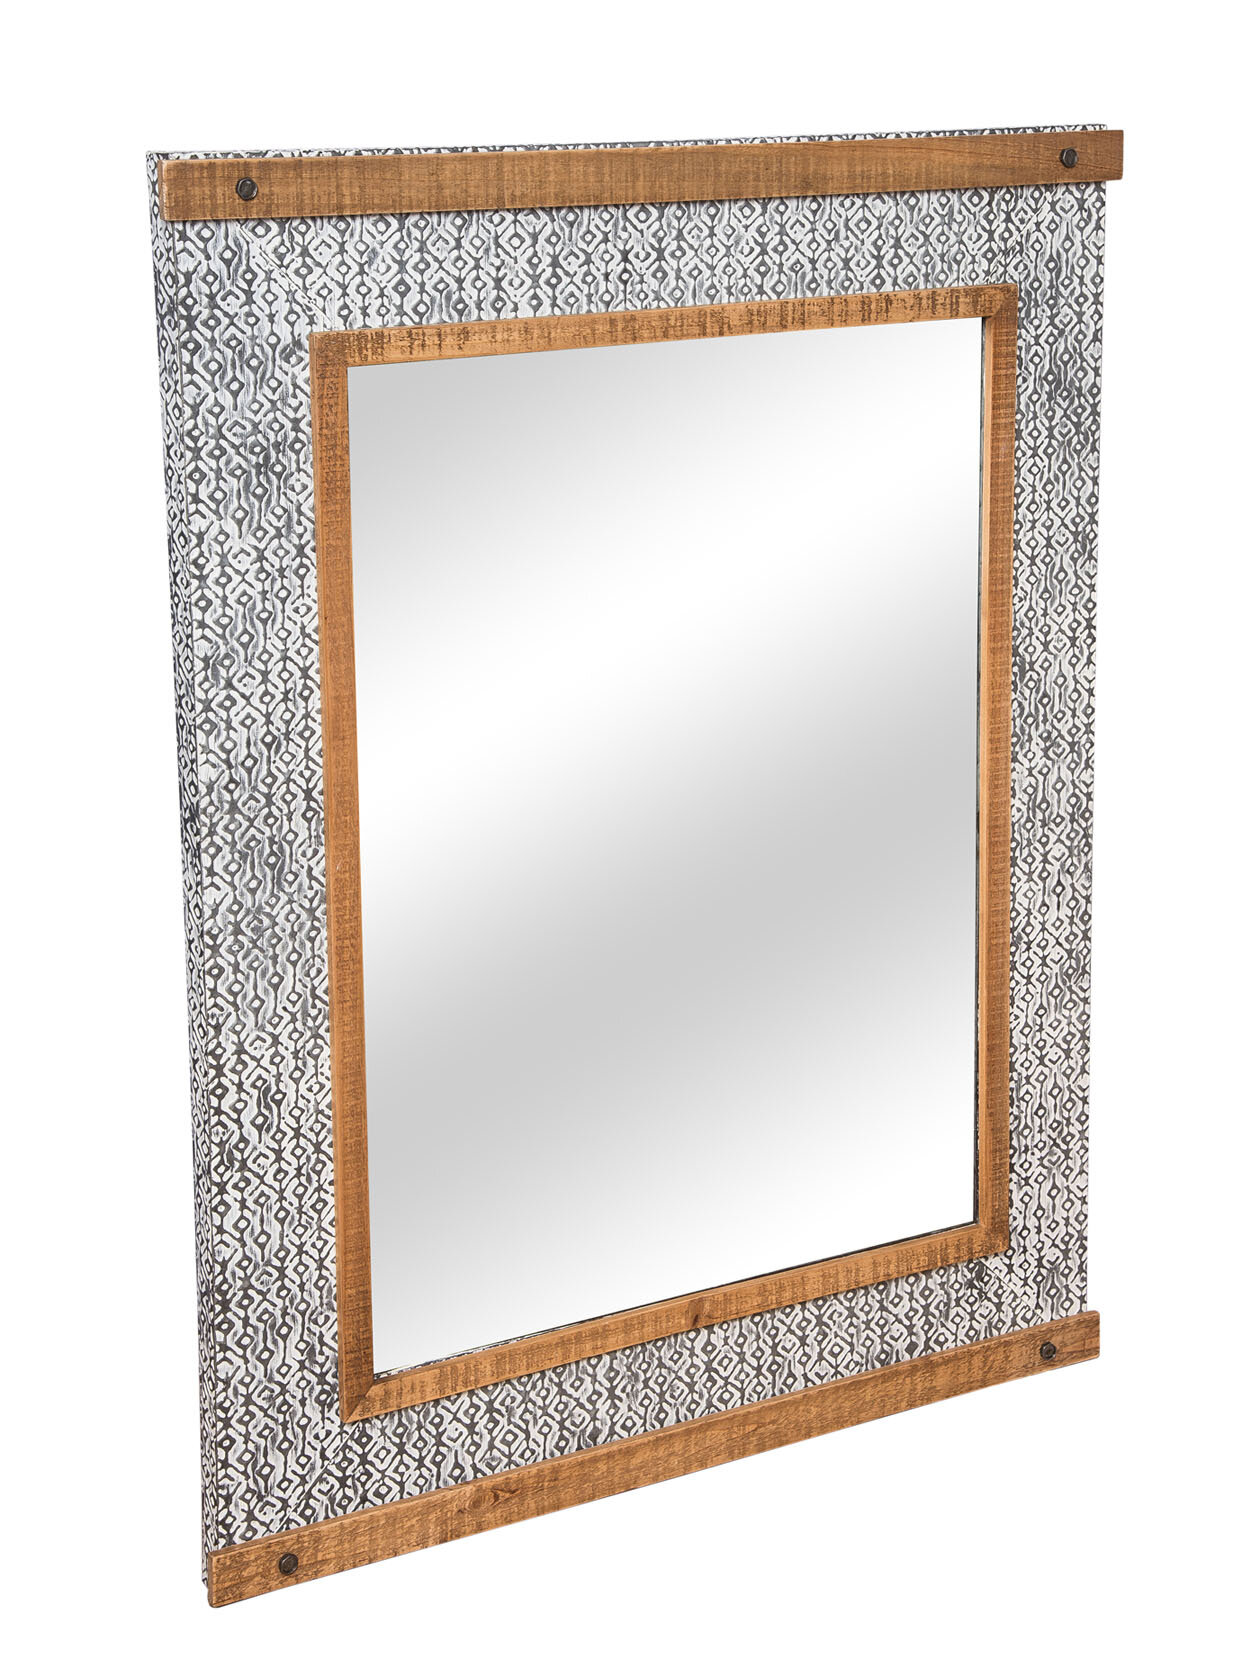 Large Oversized Wall Mirrors You Ll Love In 2021 Wayfair